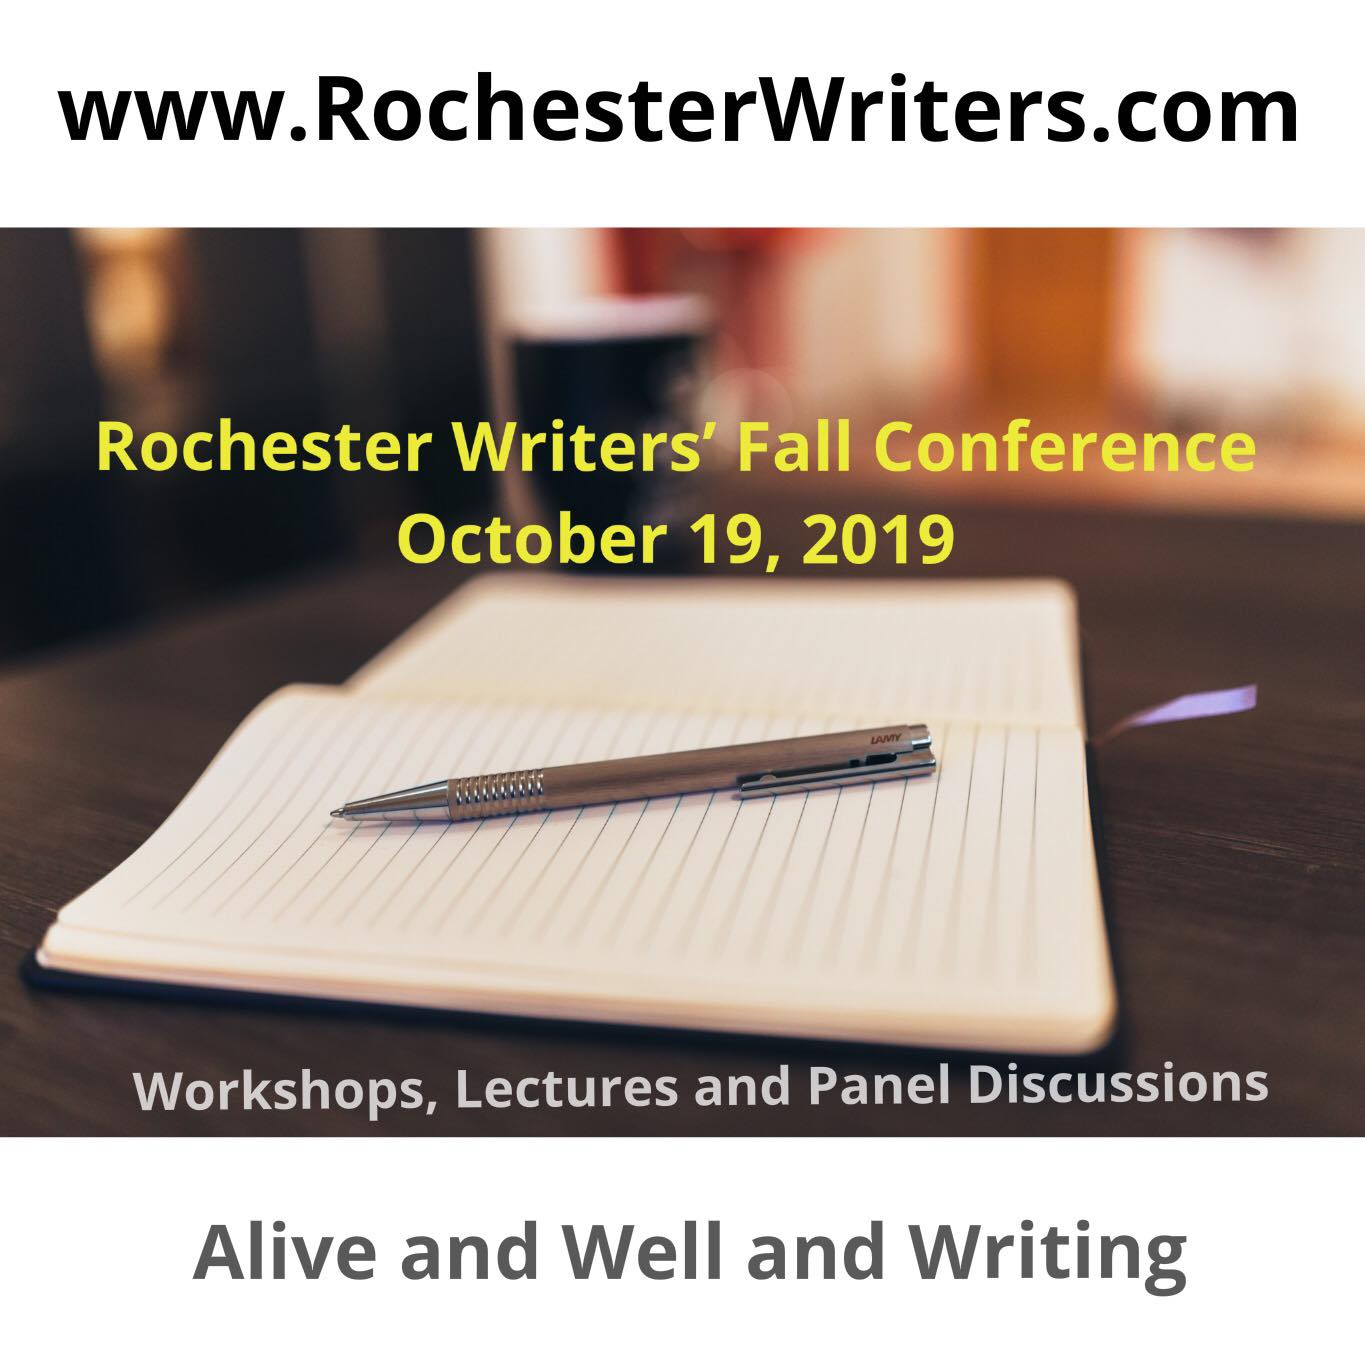 Rochester Writers' Twelfth Annual Fall Conference